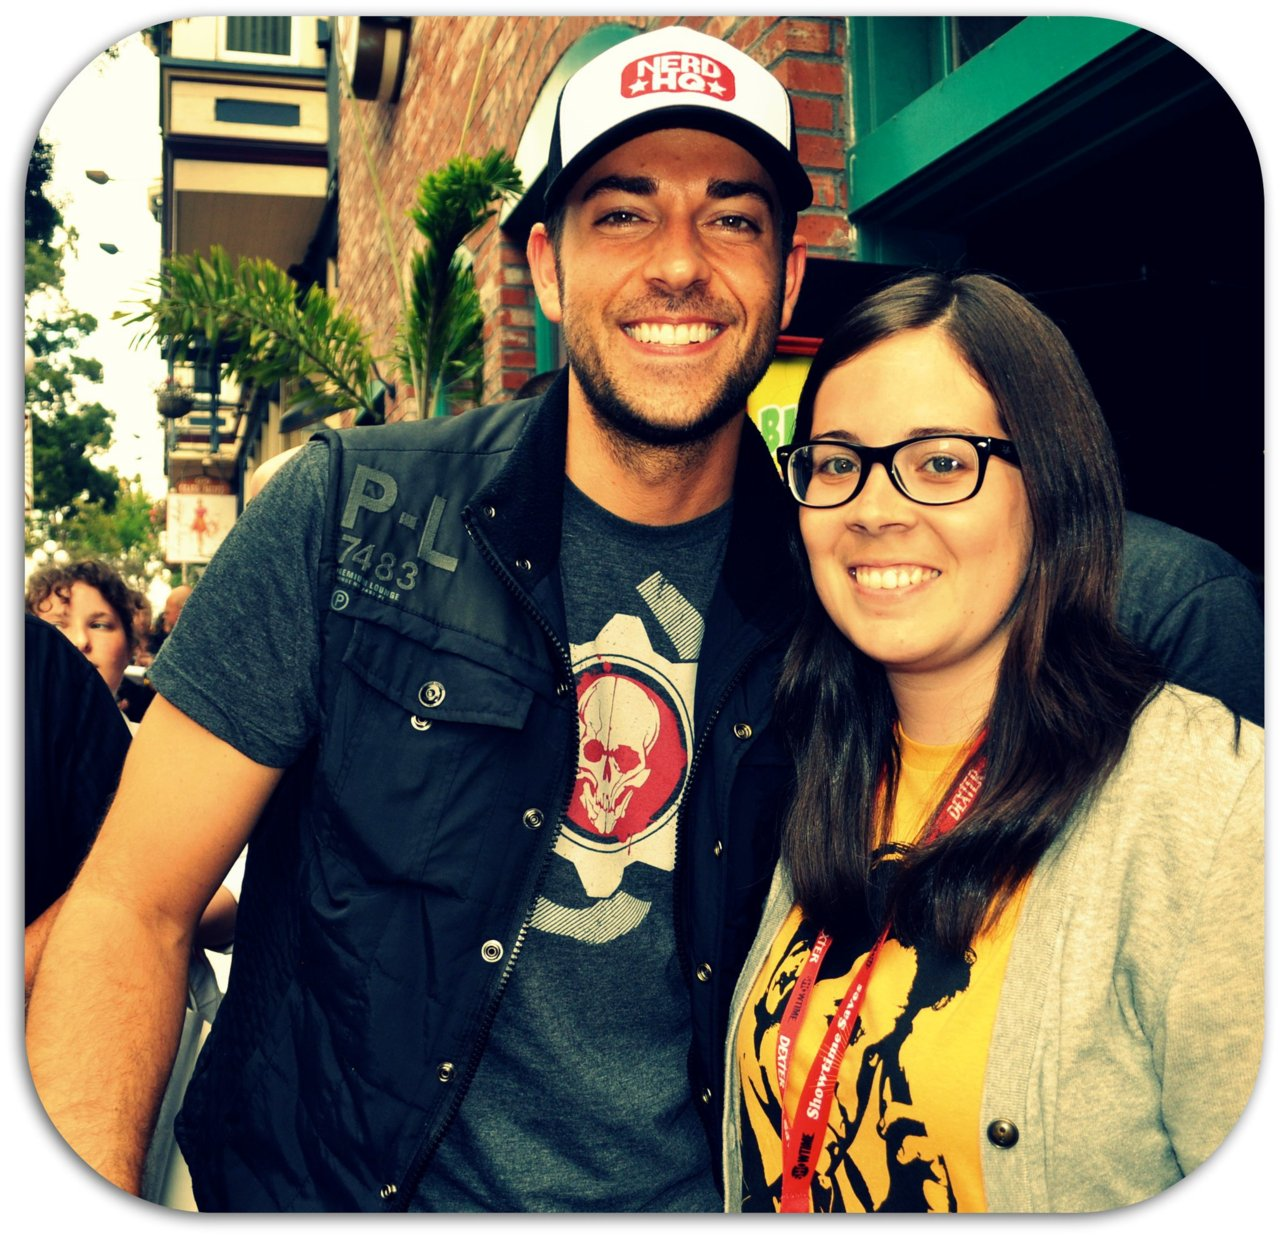 Hey, lookie! Zac & I at NerdHQ at Comic Con.